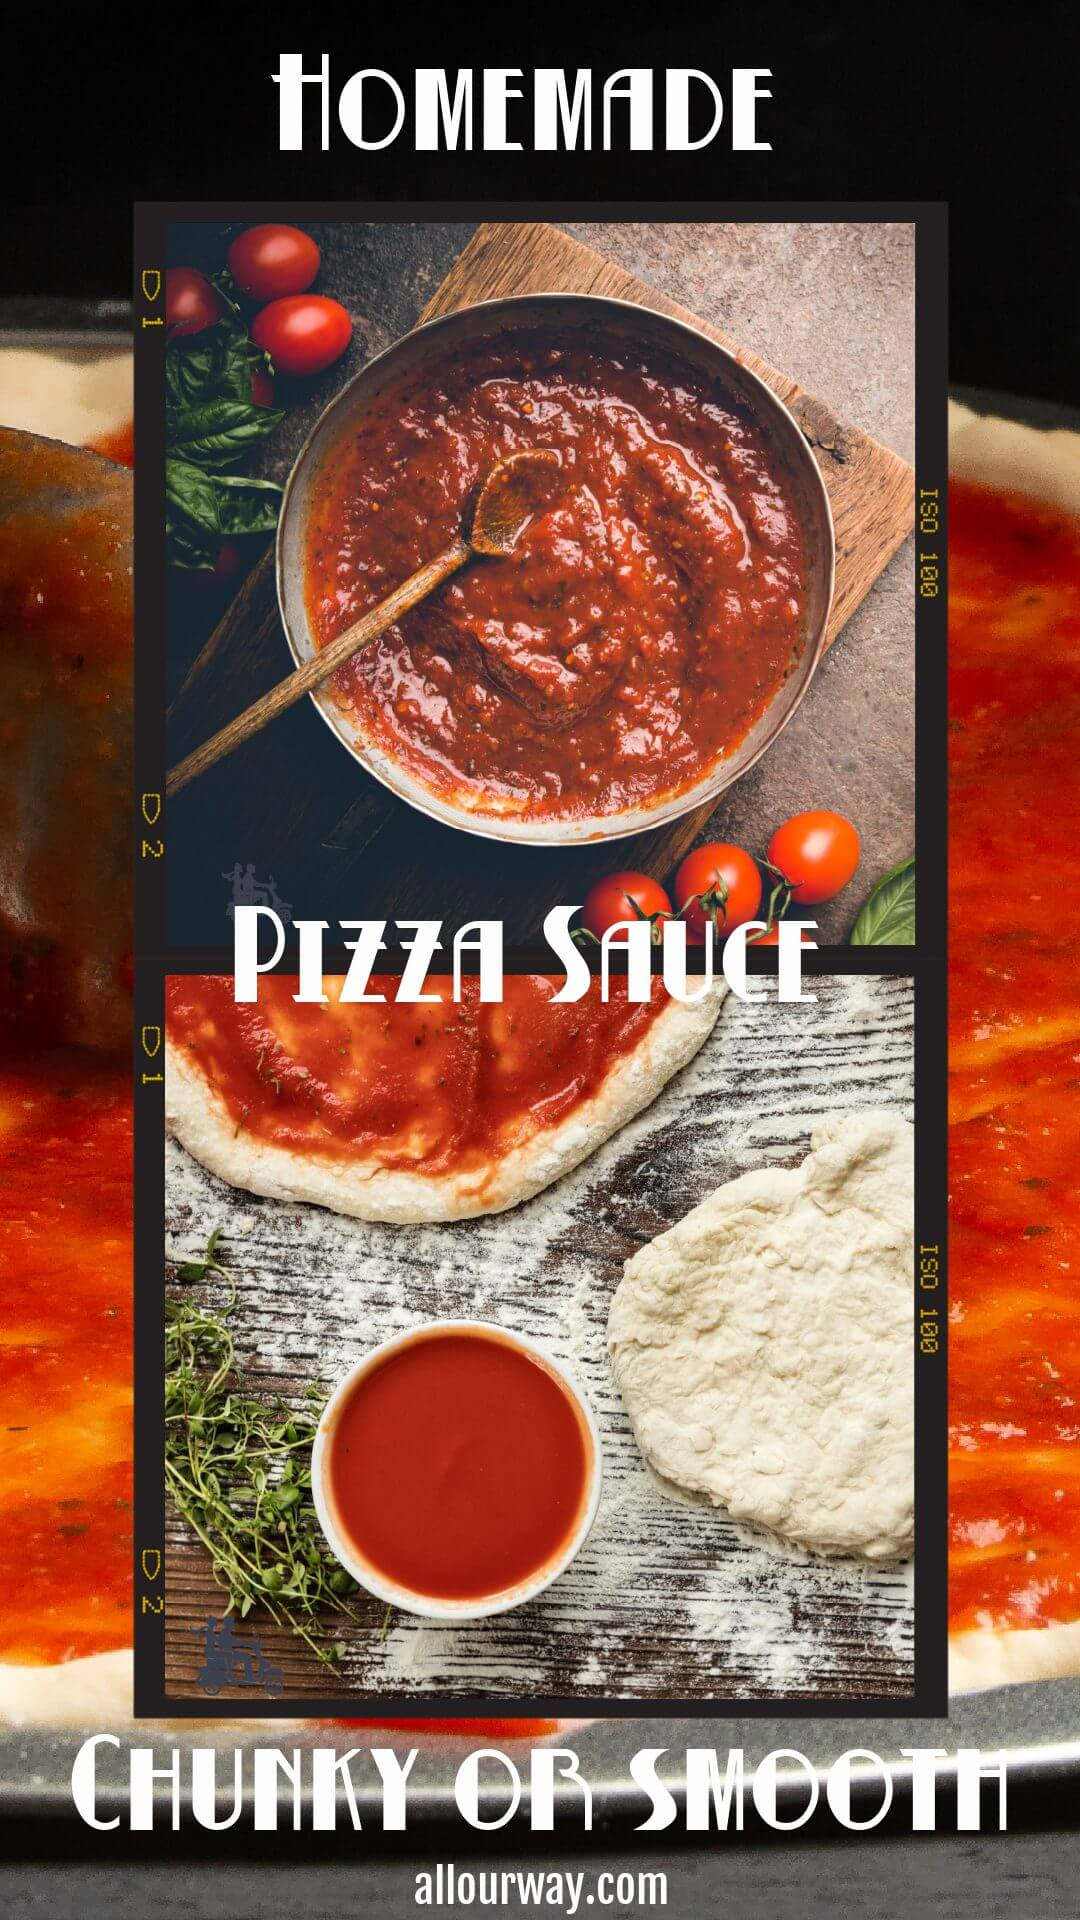 A rich thick pizza sauce that is easy to make, uses quality ingredients and is full of tomato and fresh herb flavor. This homemade sauce is from scratch from high grade tomatoes. This is a winning recipe that will be a favorite with your family. The recipe is quick and easy with pantry ingredients. #pizzasauce #pizzasaucefromscratch #homemadepizzasauce